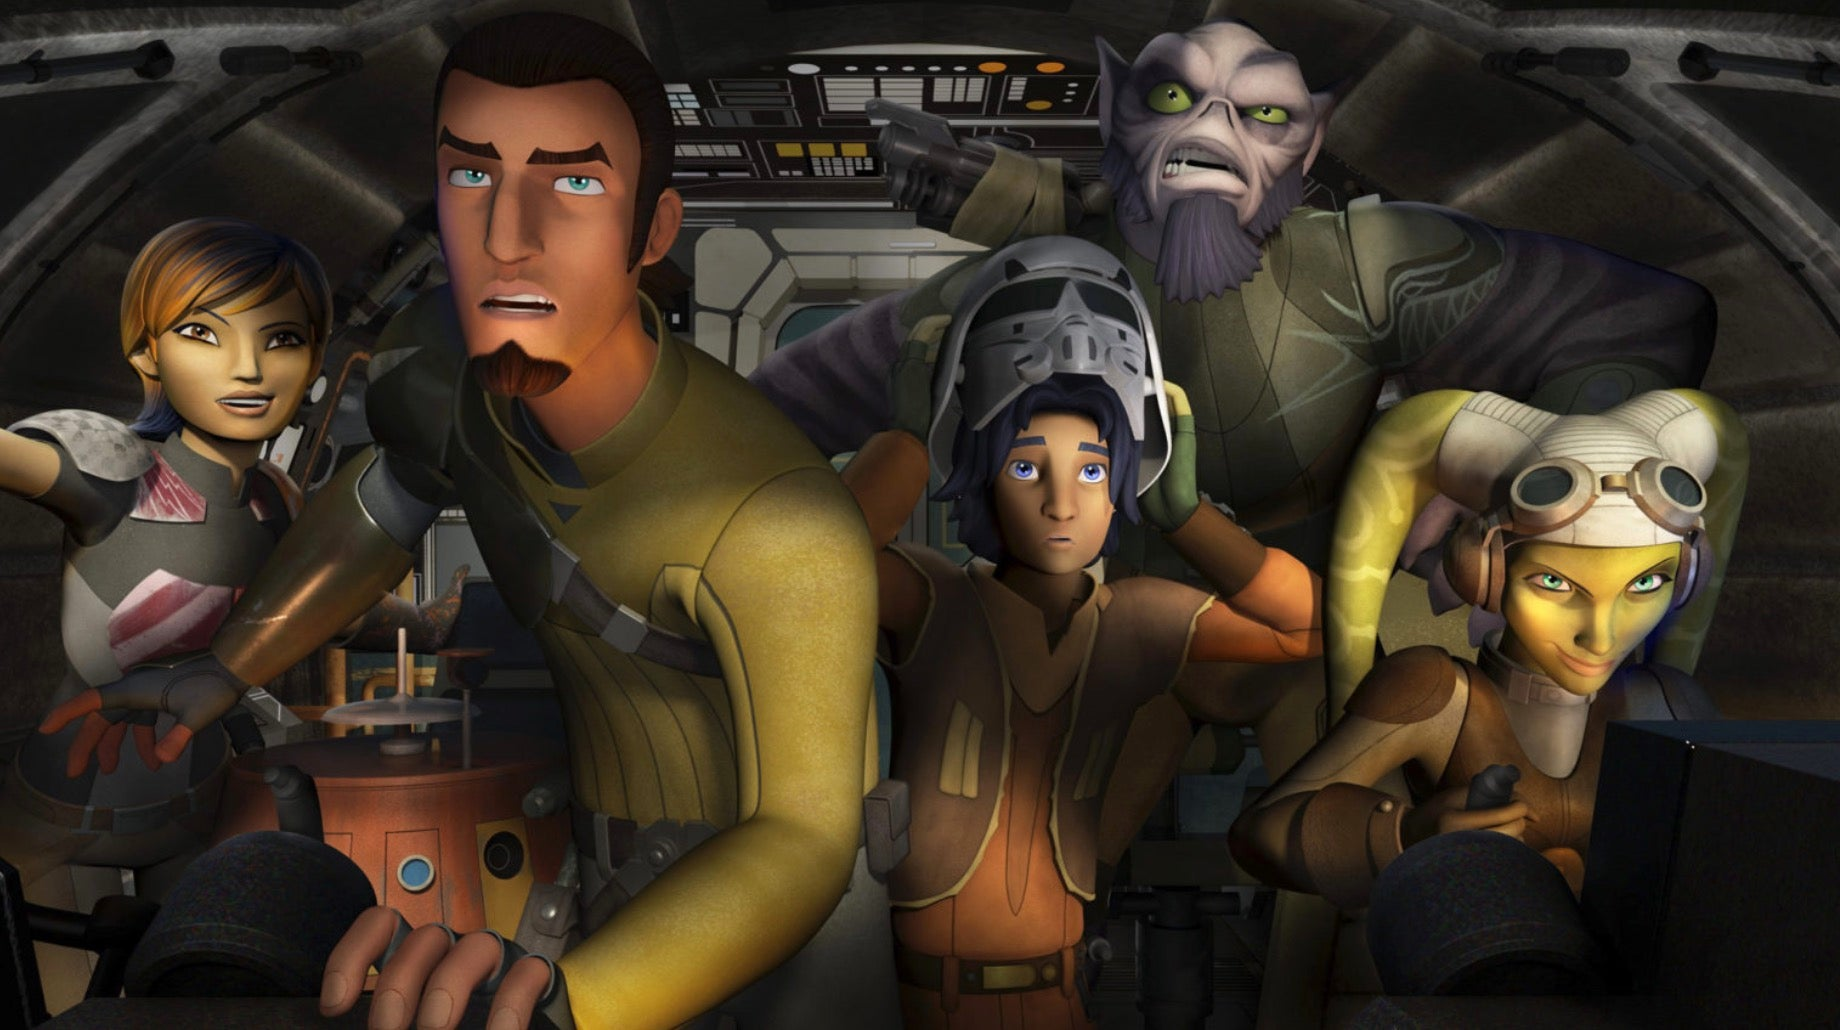 What The New Live-Action Star Wars Show Should Learn From Star Wars Rebels